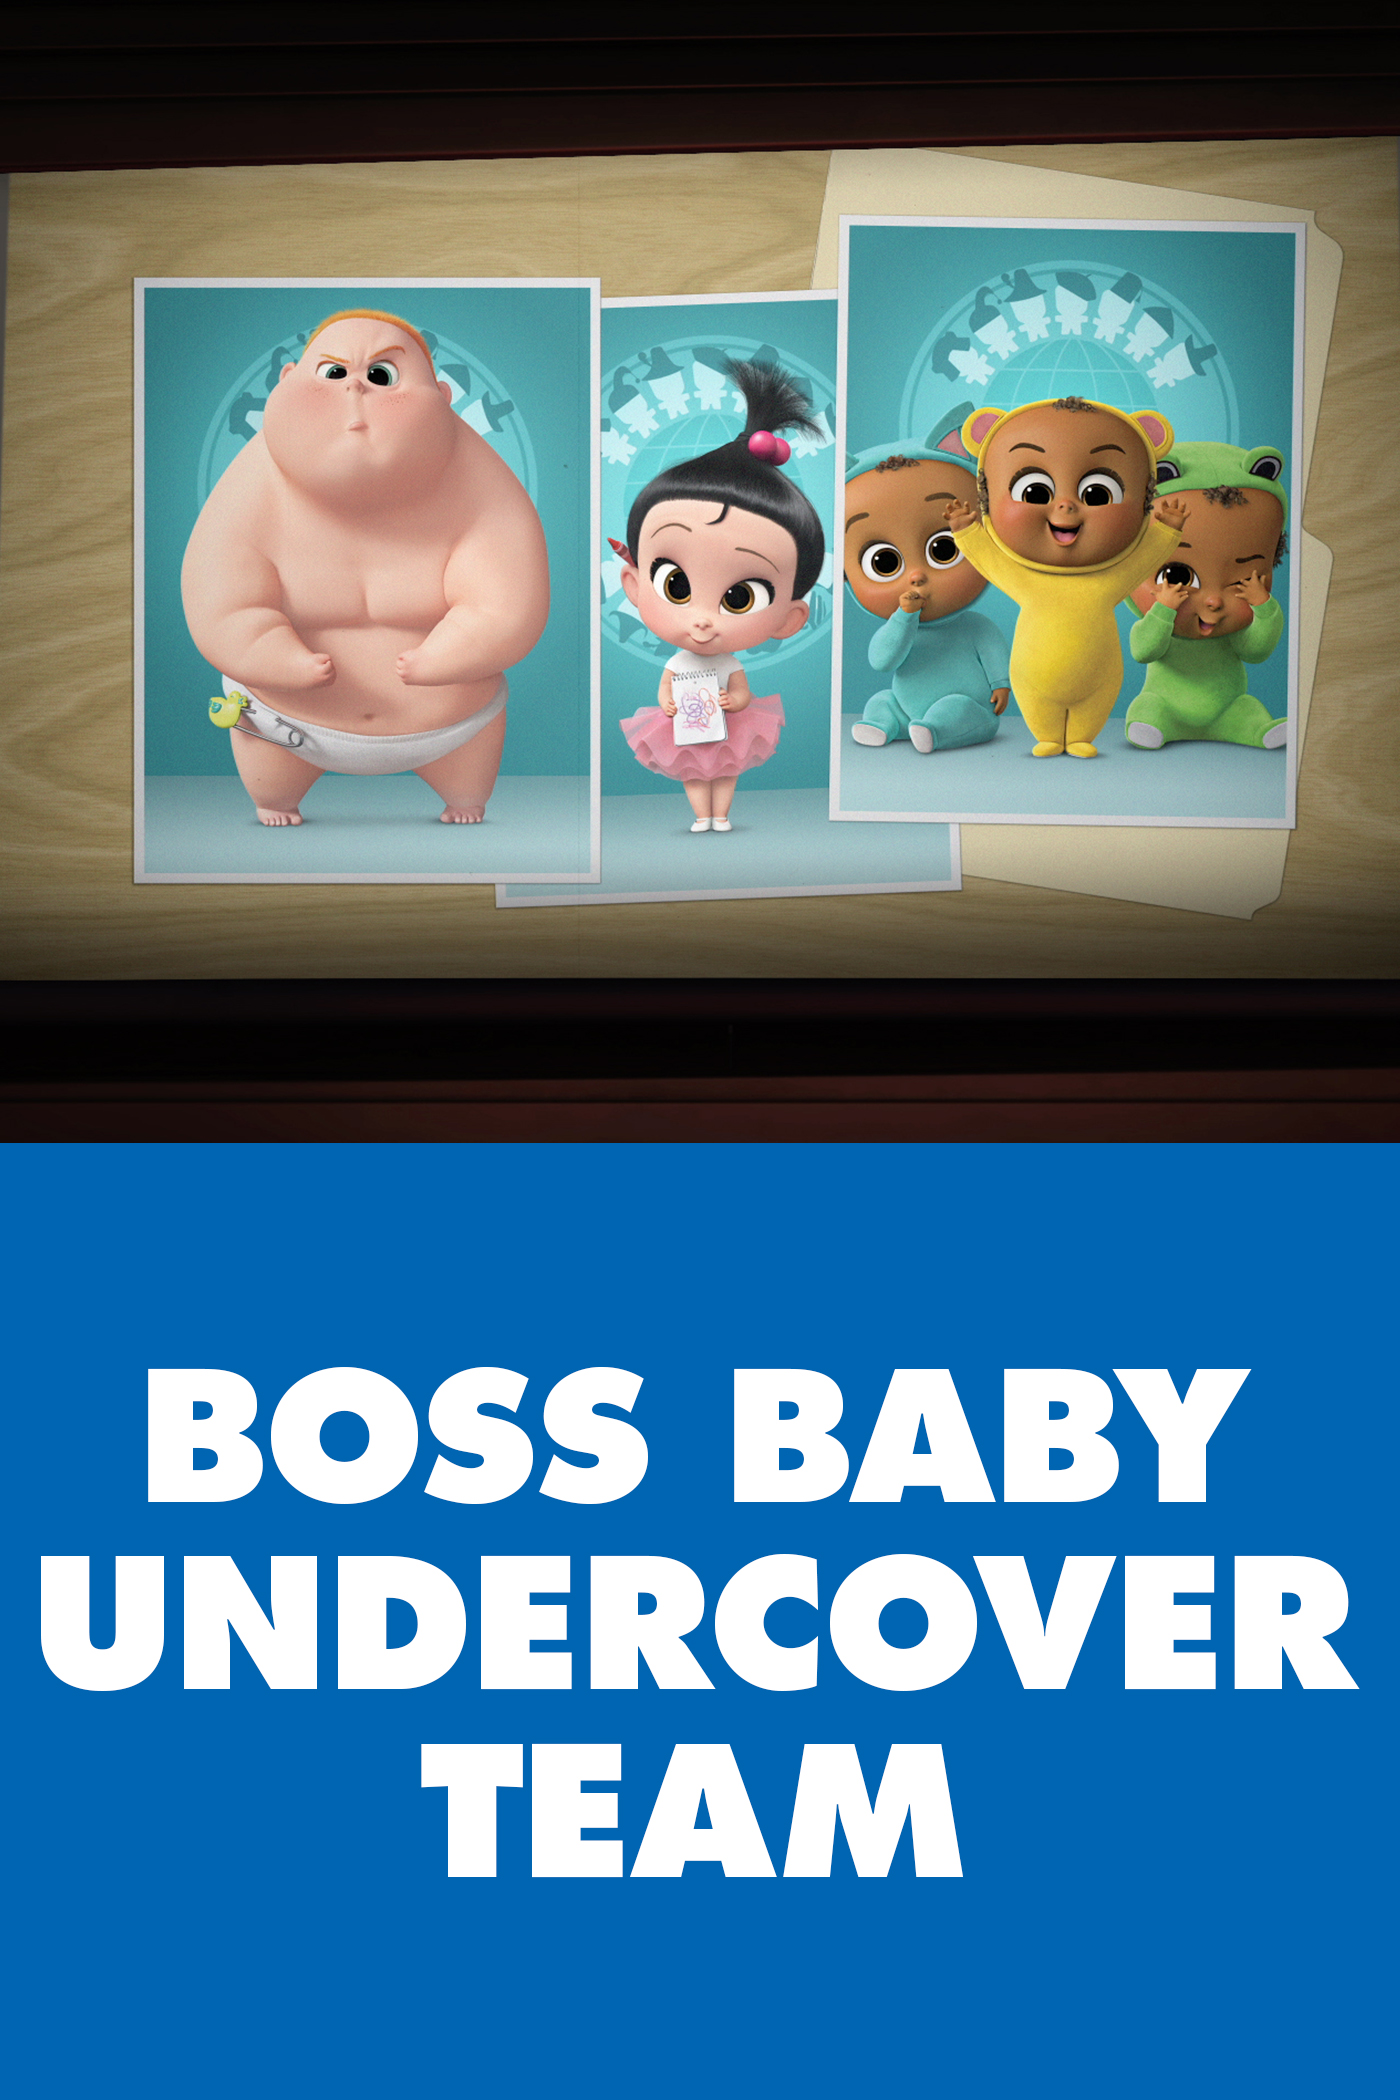 The Boss Baby's Undercover Team